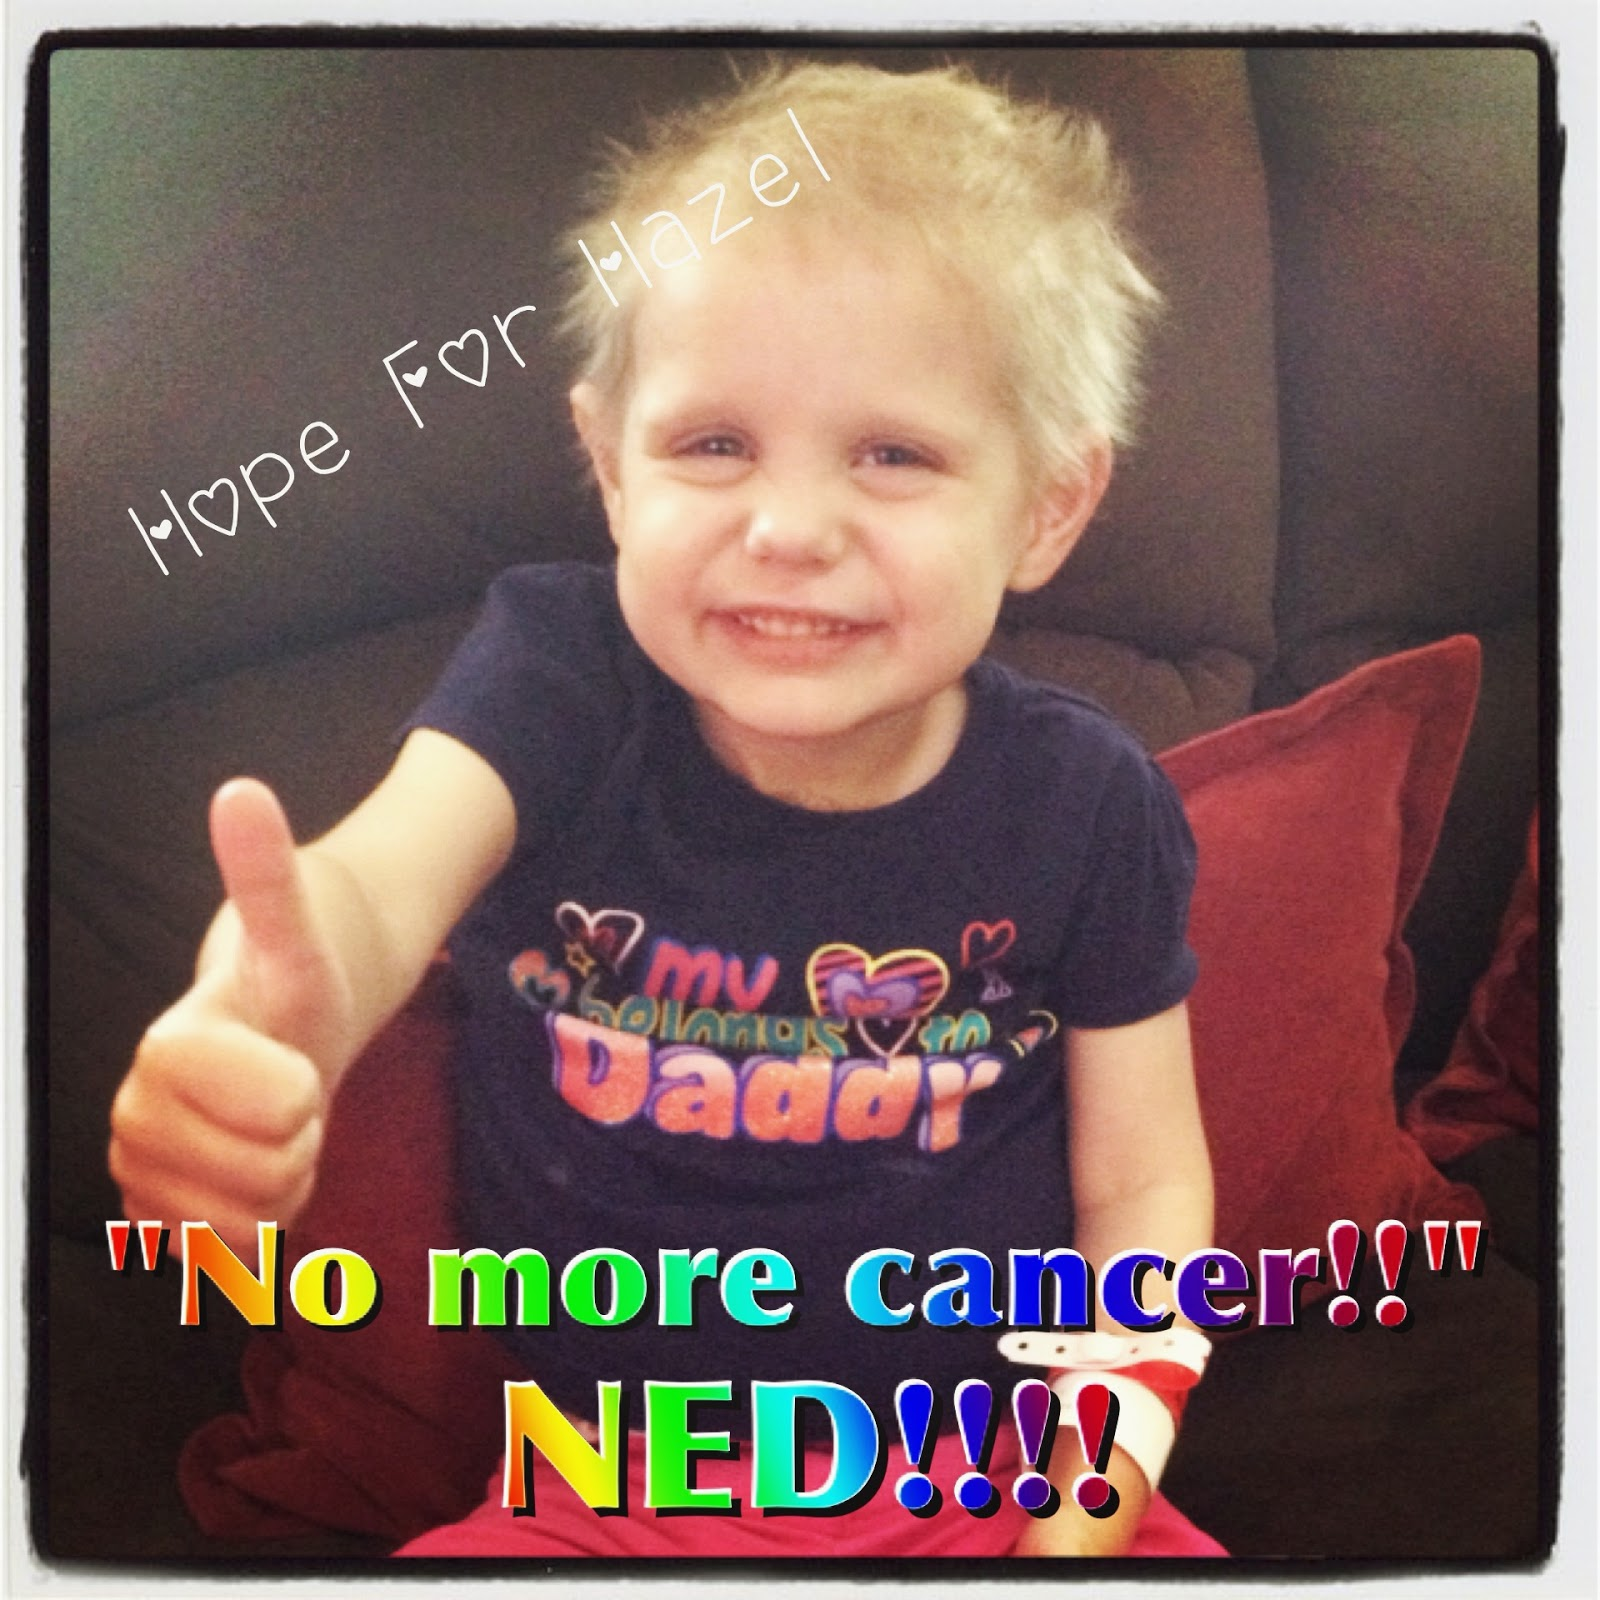 No more cancer!!!